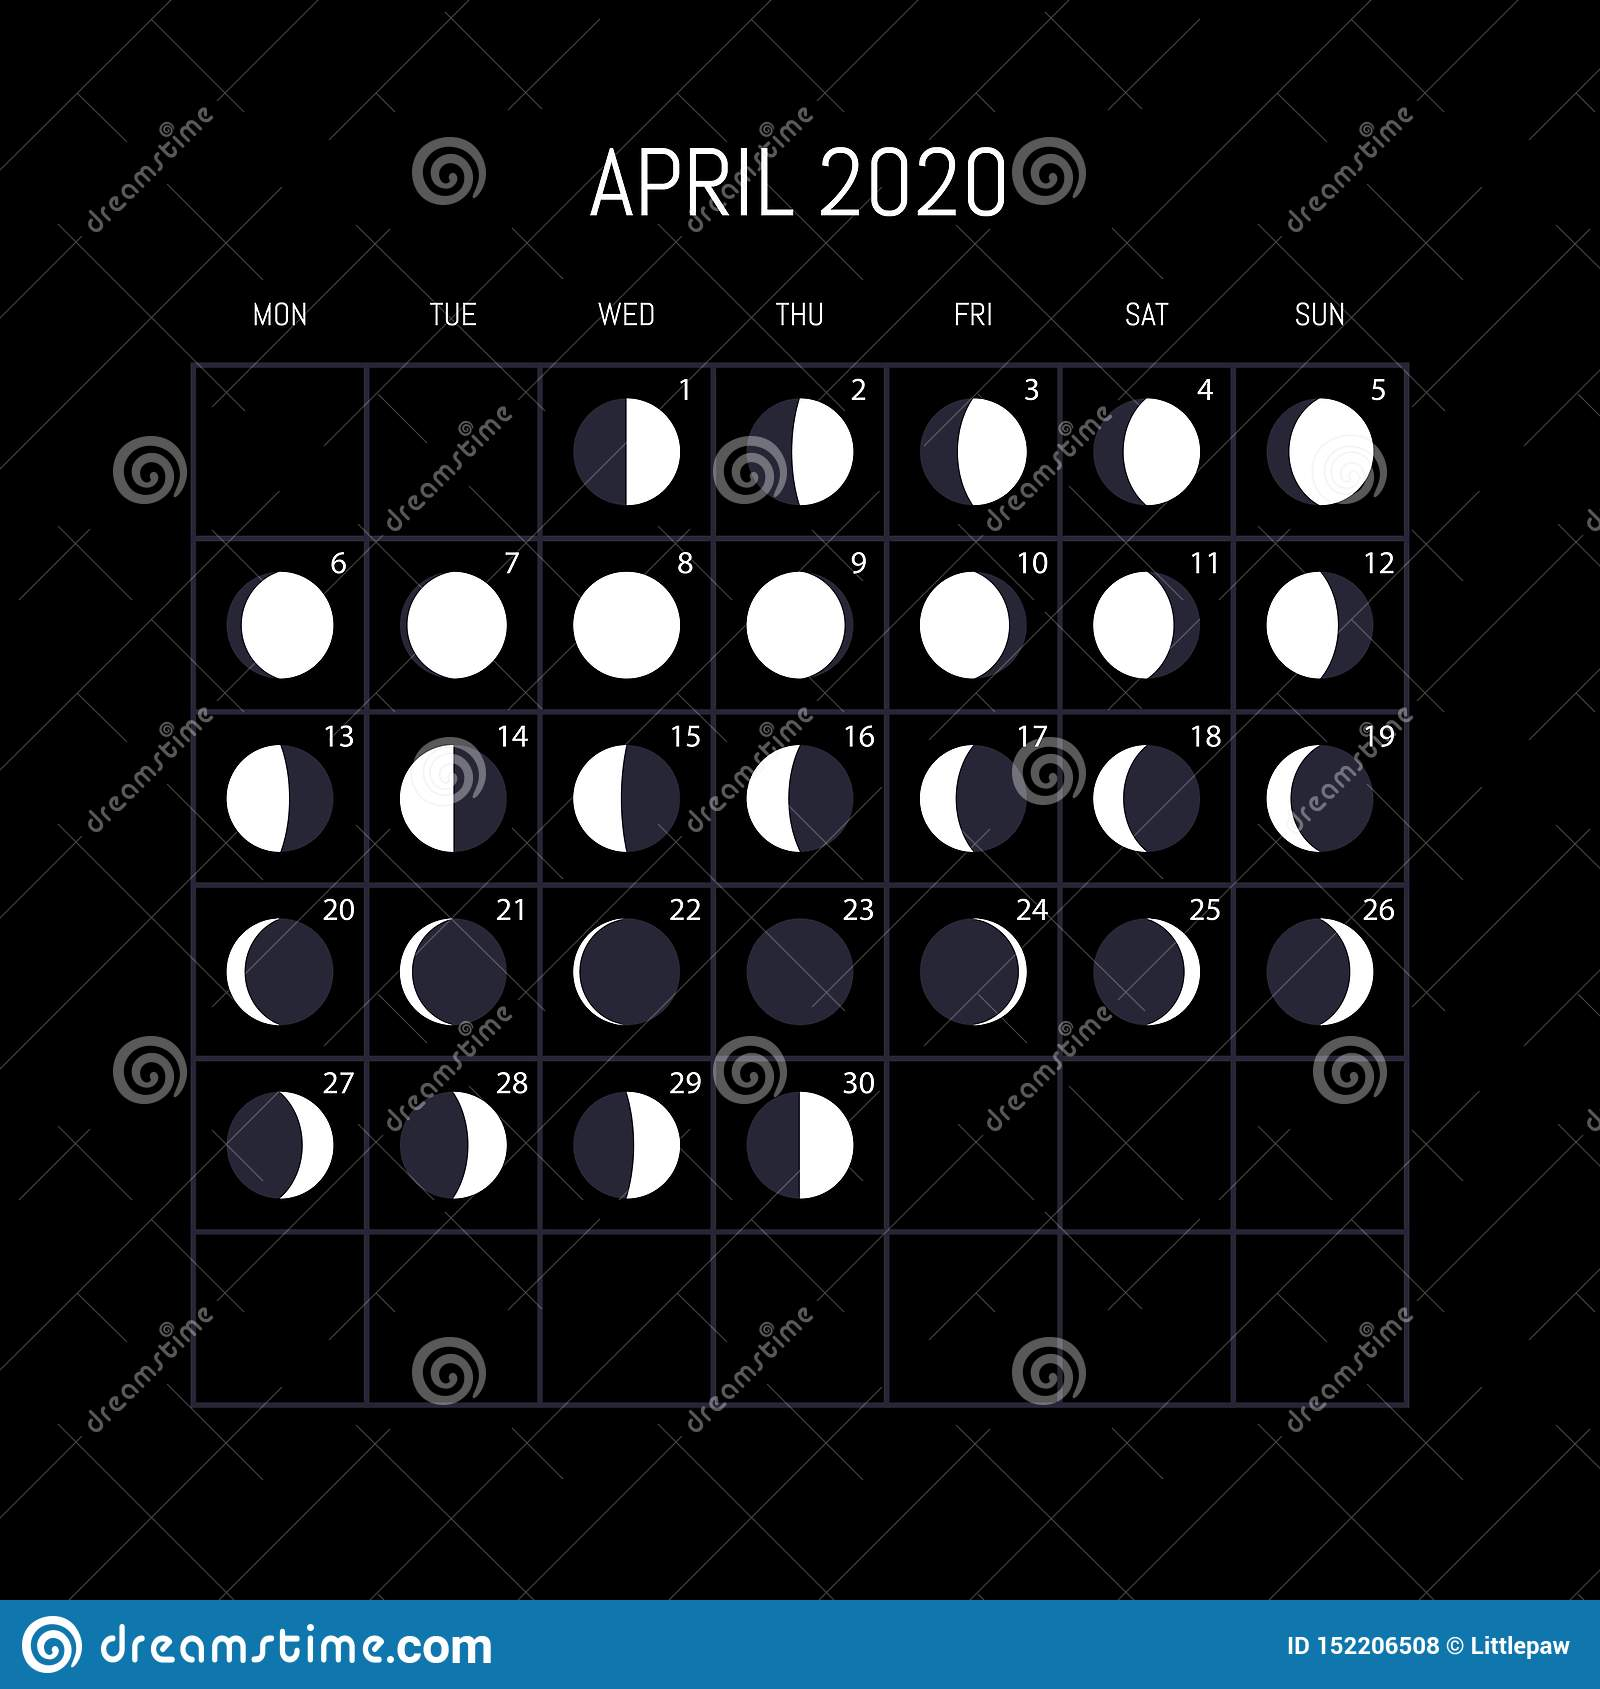 Moon Calendar April 2020 Moon Phases Calendar For 2020 Year. April. Night Background Design